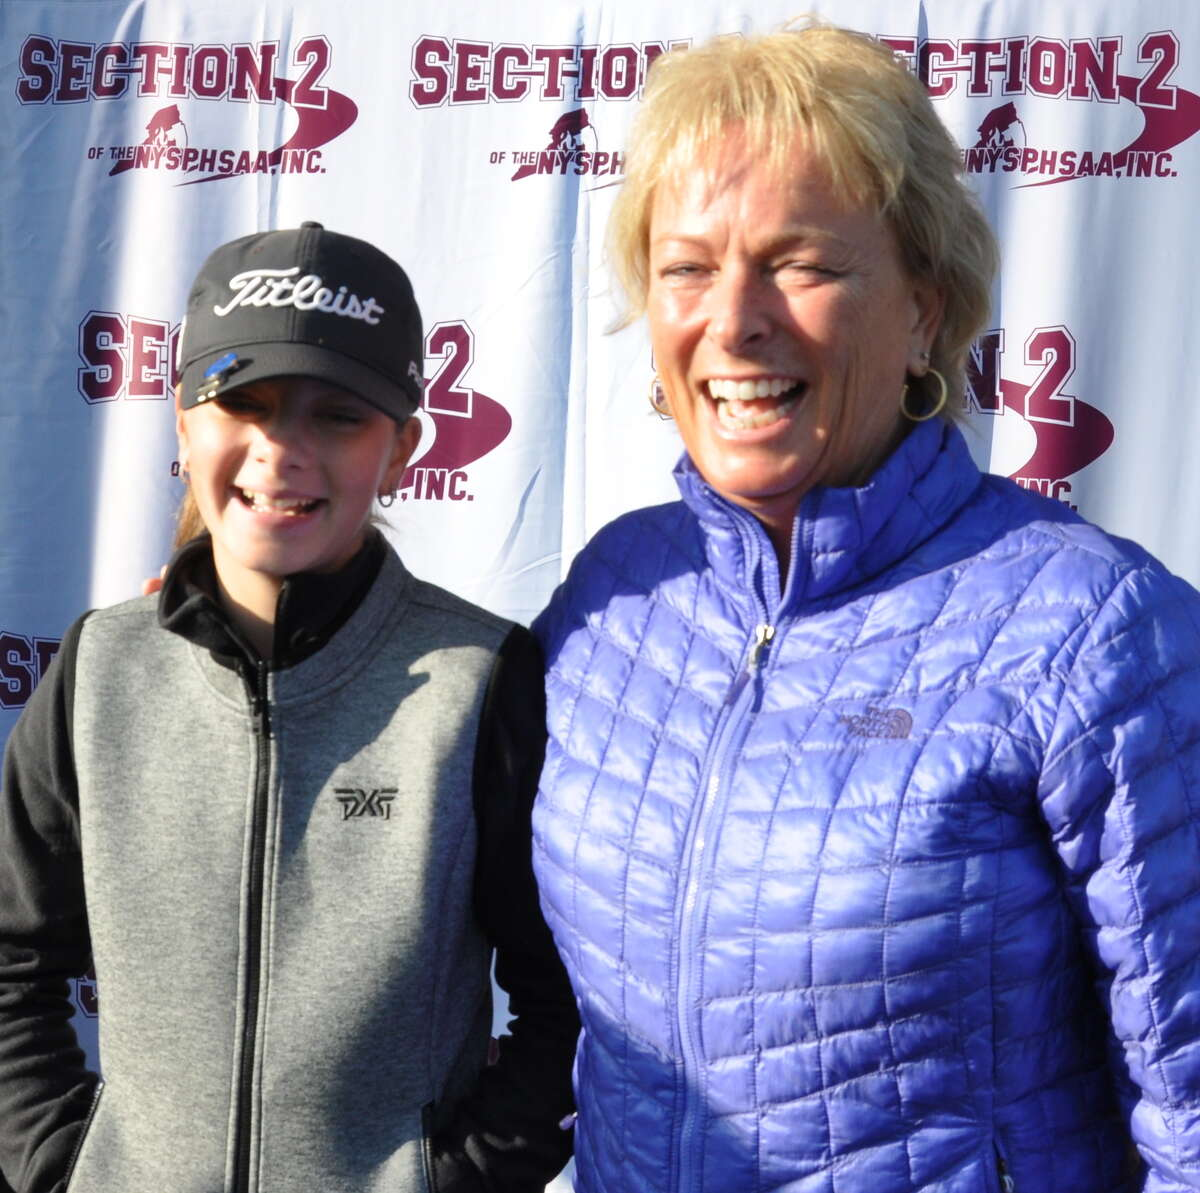 LPGA star Dottie Pepper of Saratoga Springs and Kennedy Swedick of Albany Academy for Girls share a hug and a laugh at the first Section 2 Girls Golf sectional and state qualifier on Oct. 11, 2019, at Fairways of Halfmoon. Pepper spoke to the players and signed autographs before the event. (Joyce Bassett / Times Union)